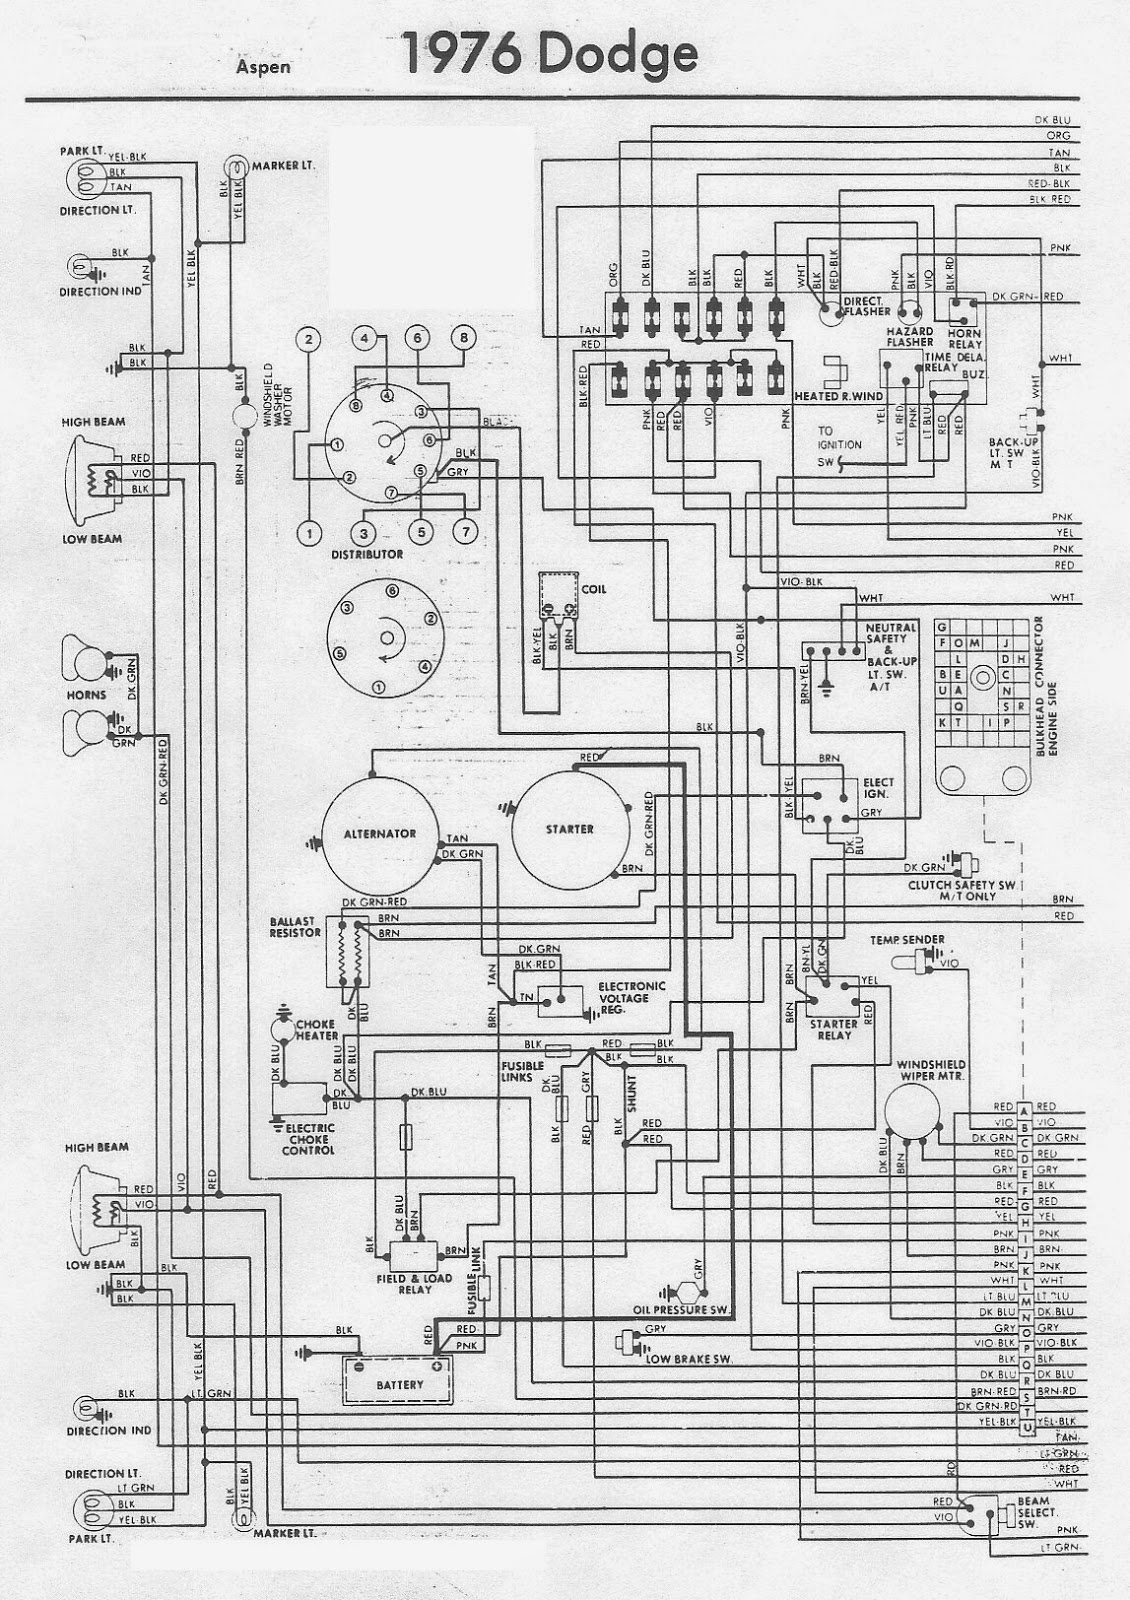 1954 M37 Wiring Diagram Electrical Diagrams Willys Jeep Schematic Captivating Photos Best Image C70